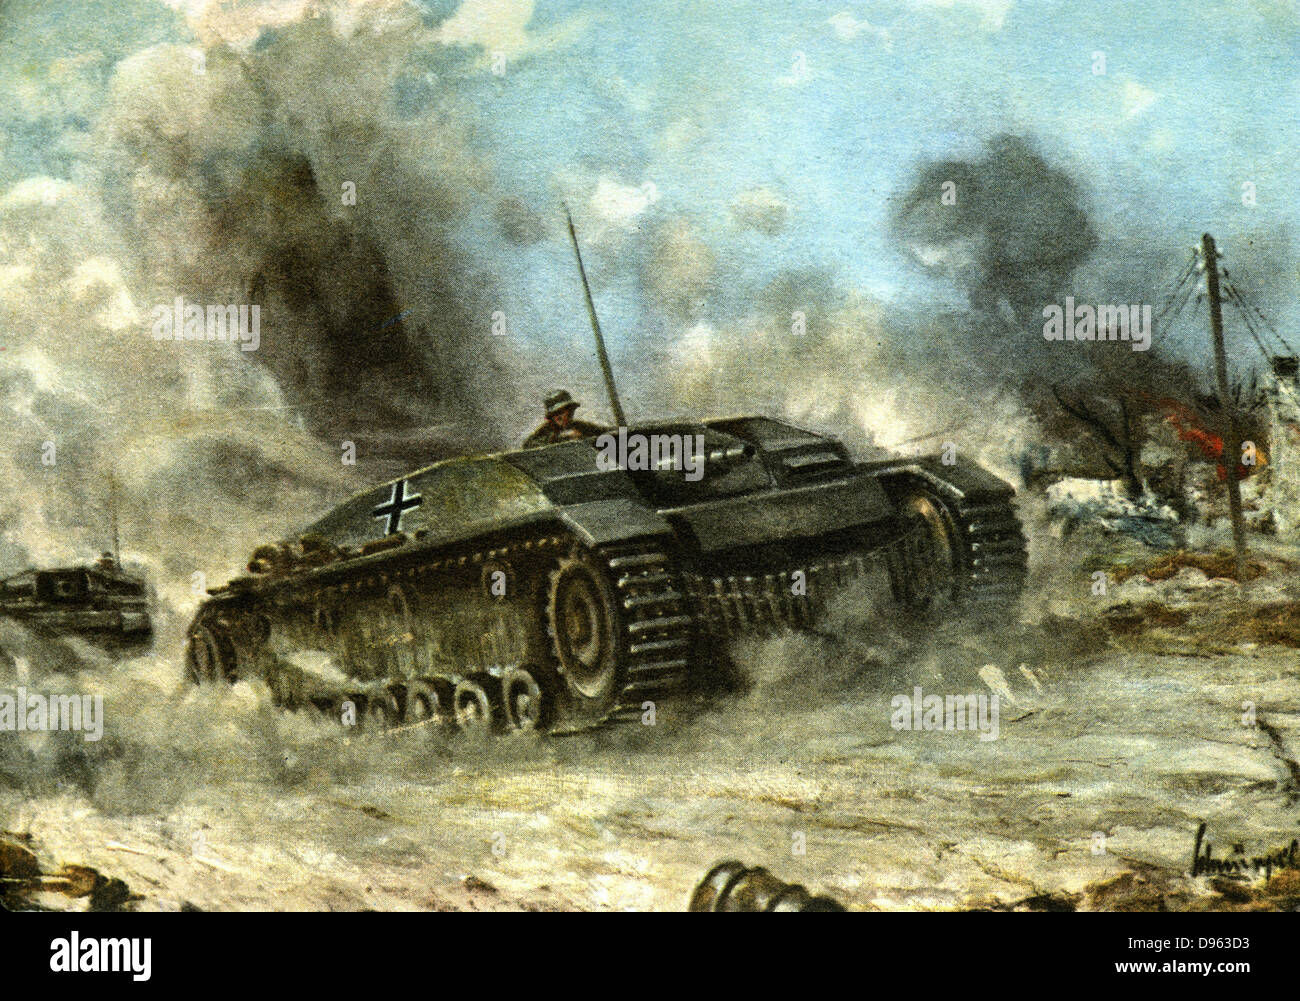 World War 2: German tank 1942-1943. - Stock Image